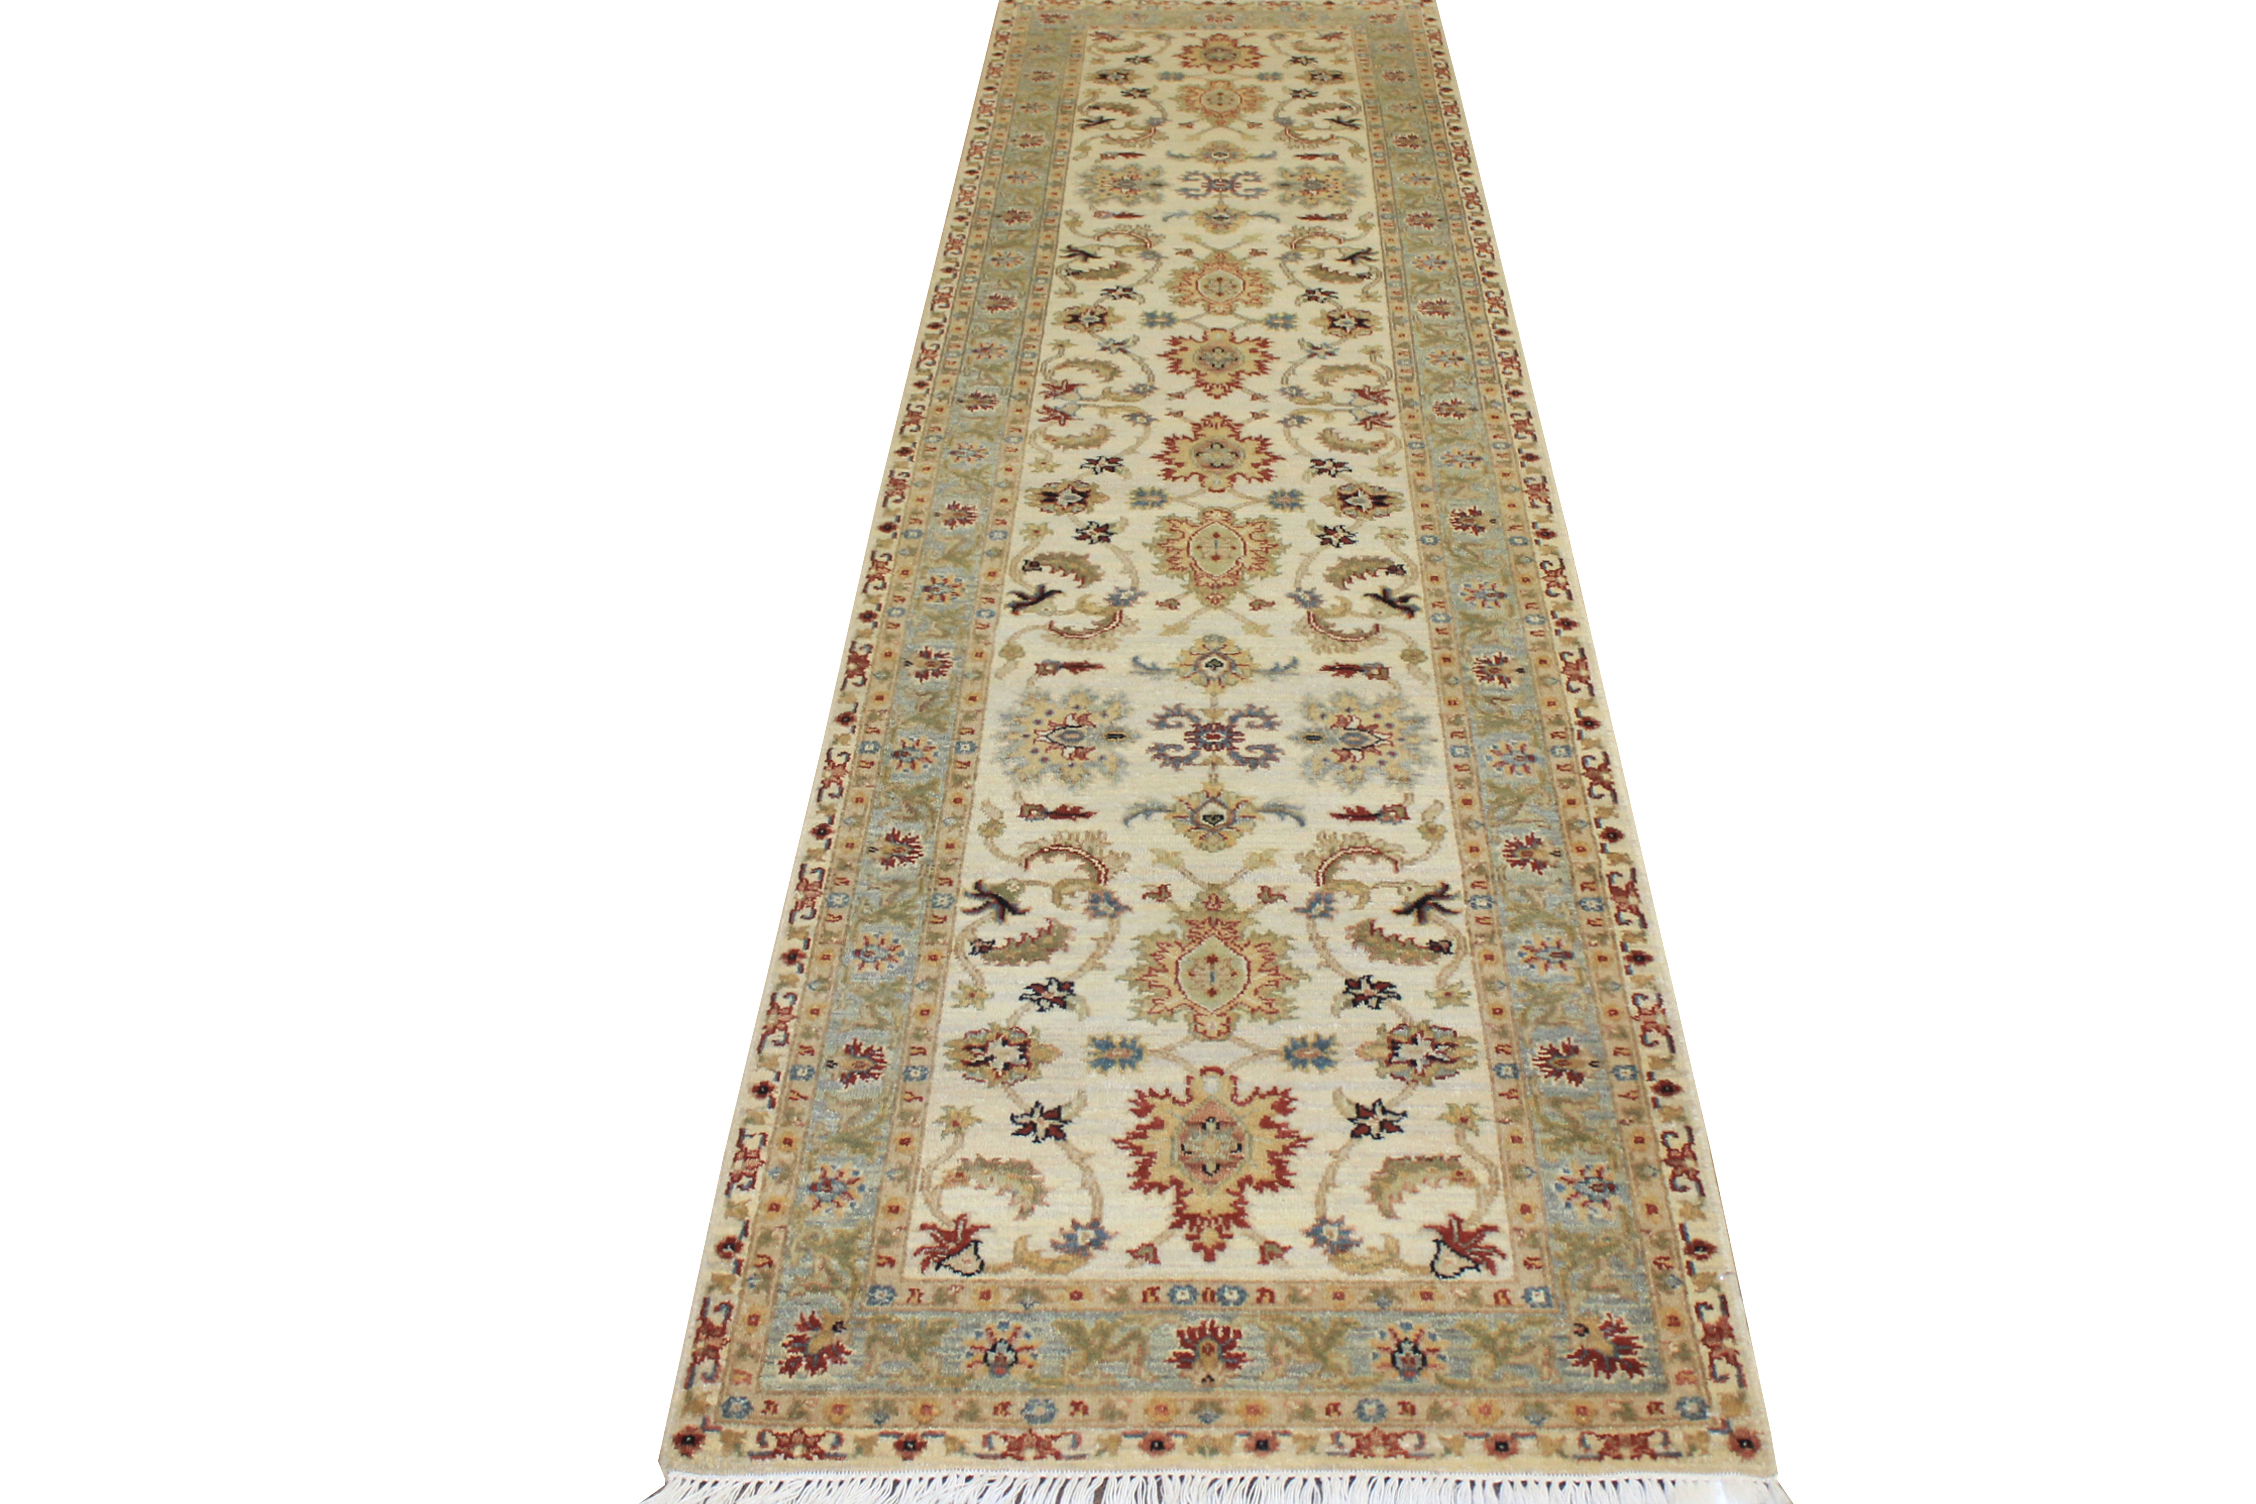 10 ft. Runner Traditional Hand Knotted Wool Area Rug - MR16253